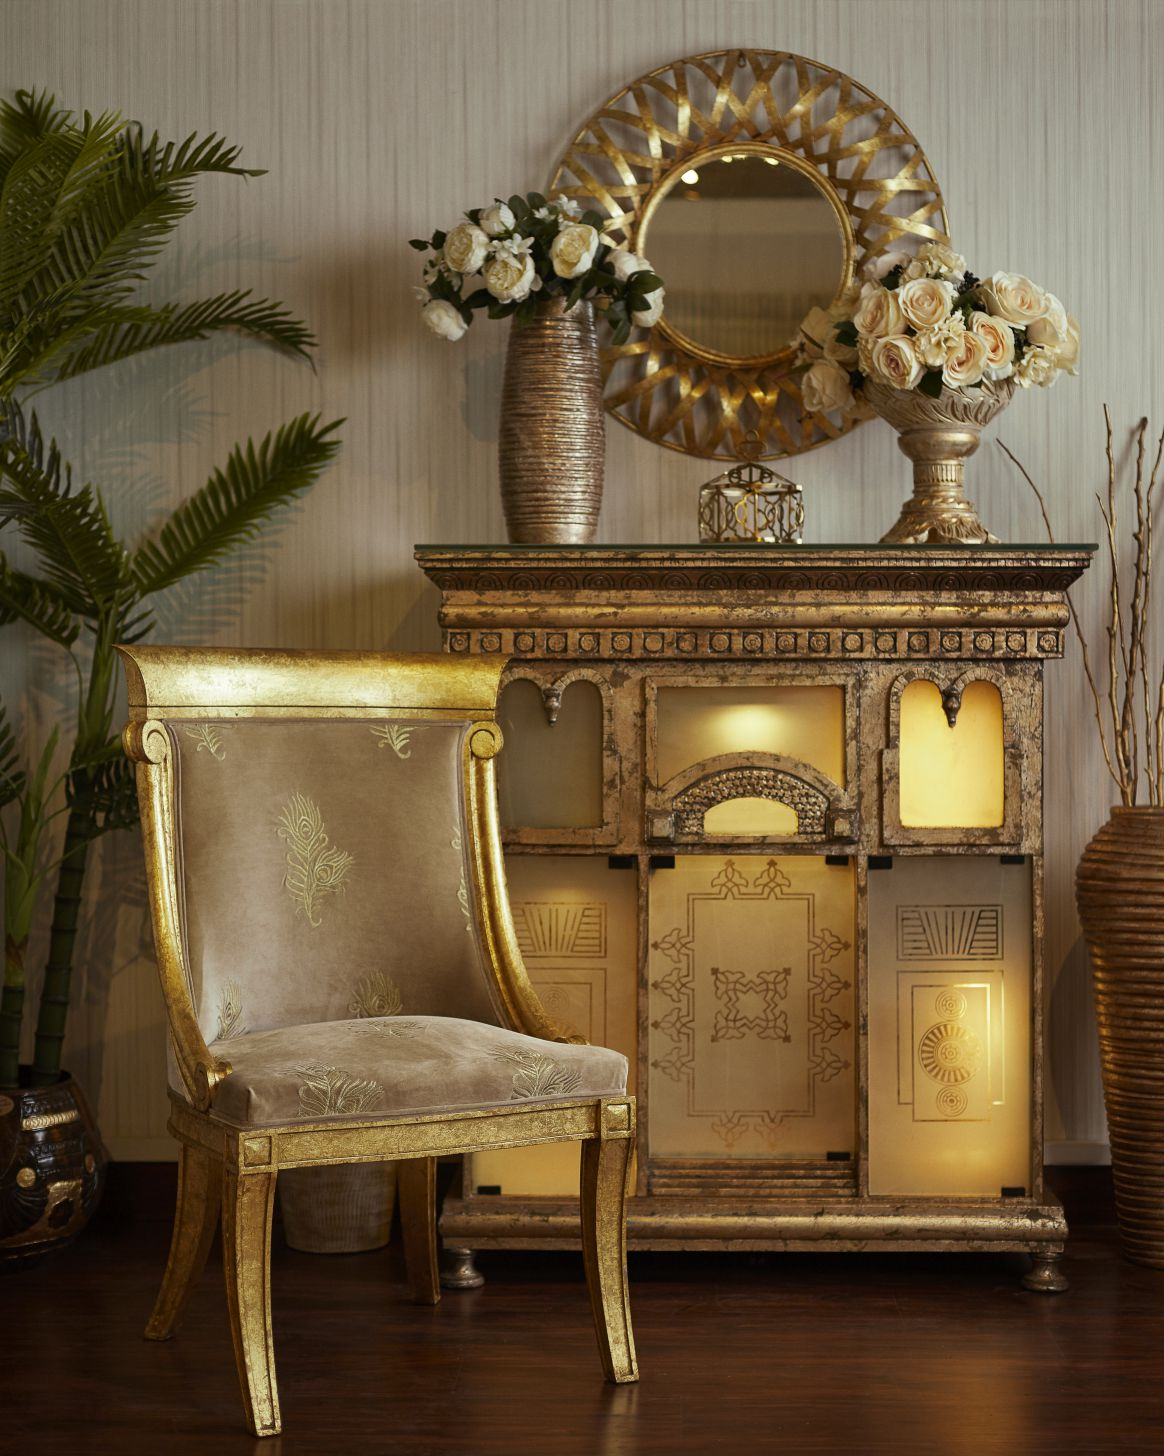 Distressed gold leafed Peacock Embroidered chair and Granada Palace with Kalamkaar Accessories.